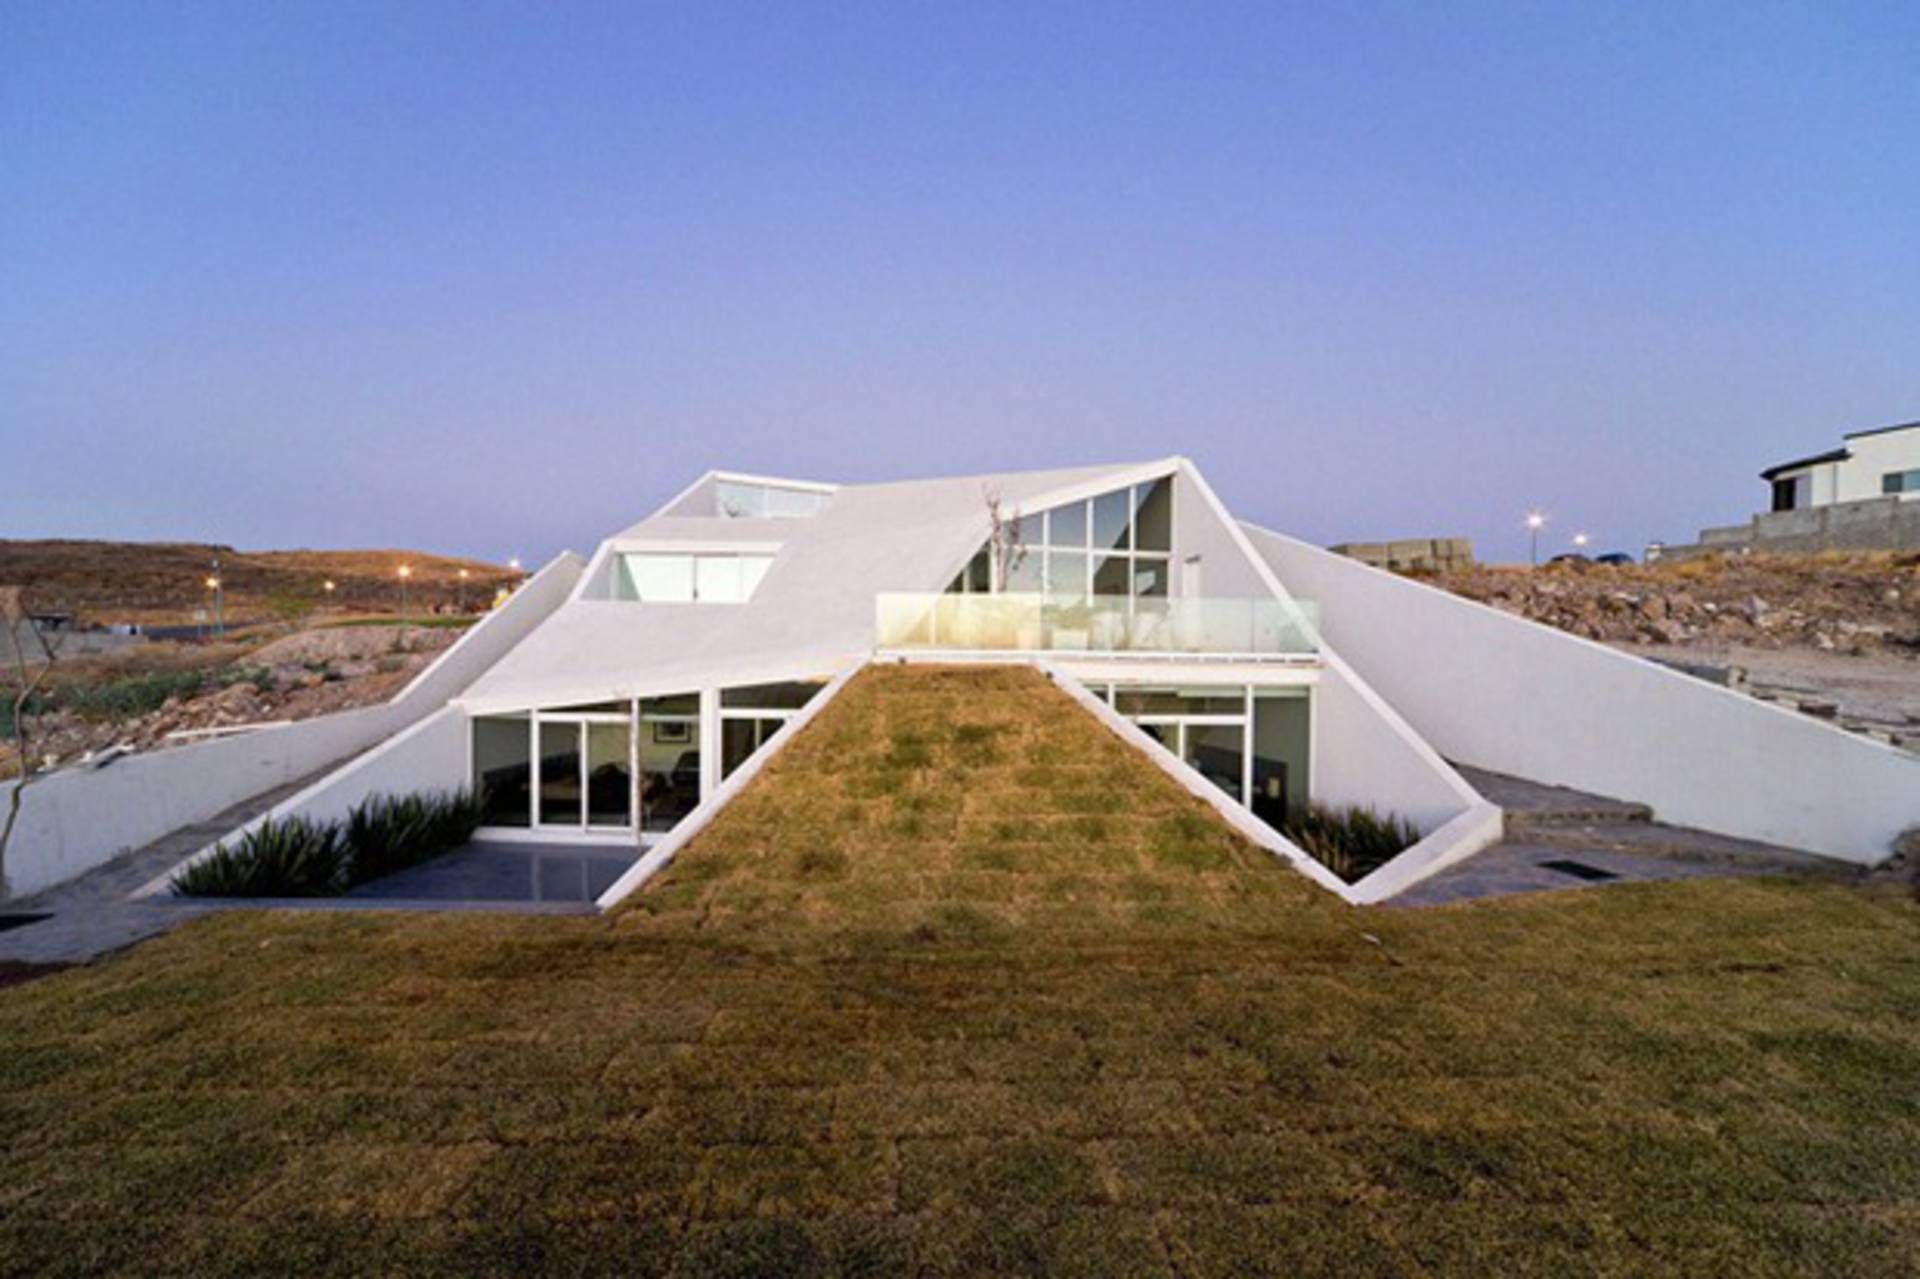 House in Chihuahua - interesting geometry and modern style - Home ...